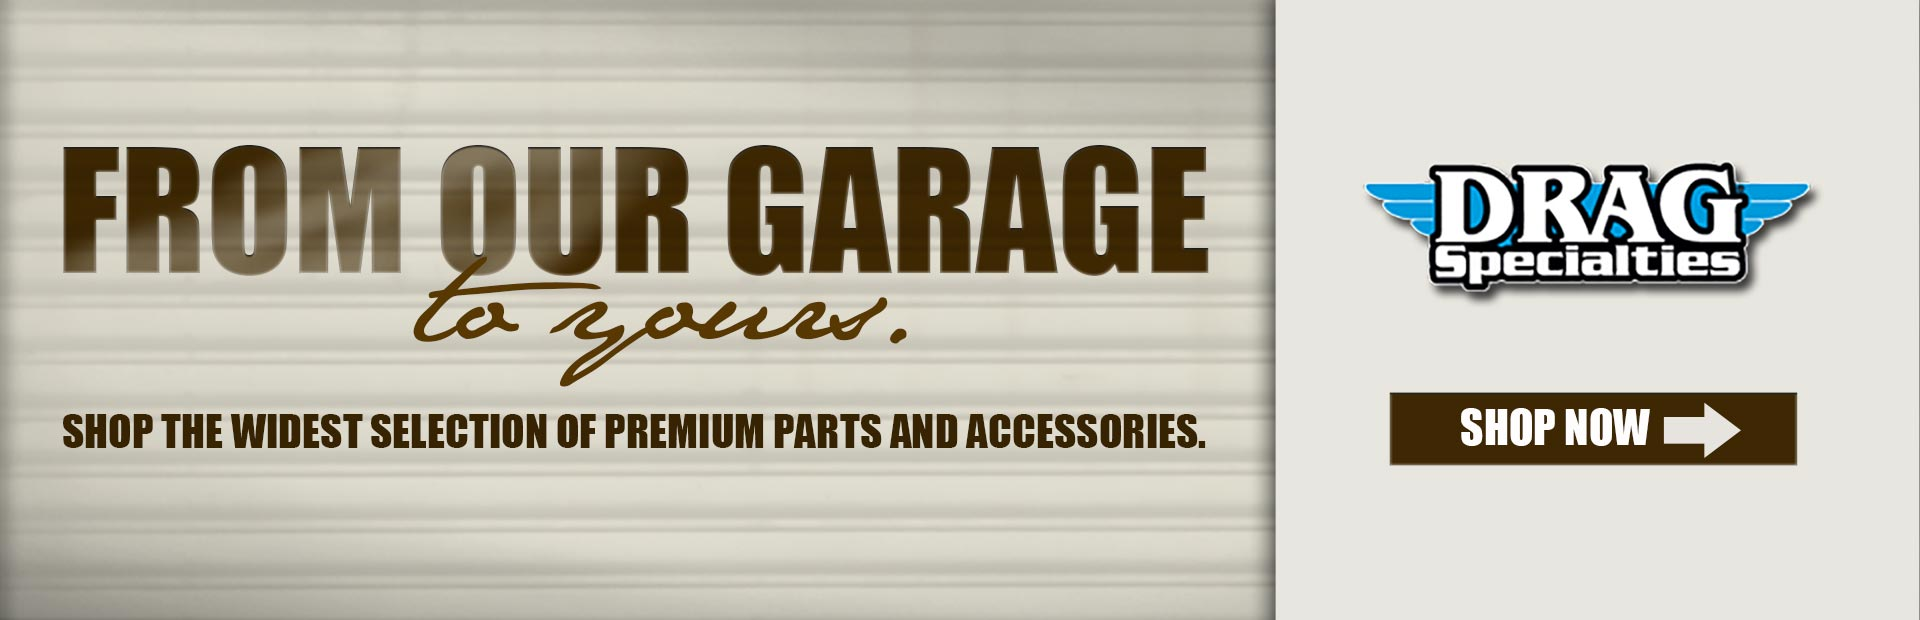 Drag Specialties: From our garage to yours! Shop the widest selection of premium parts and accessories now.